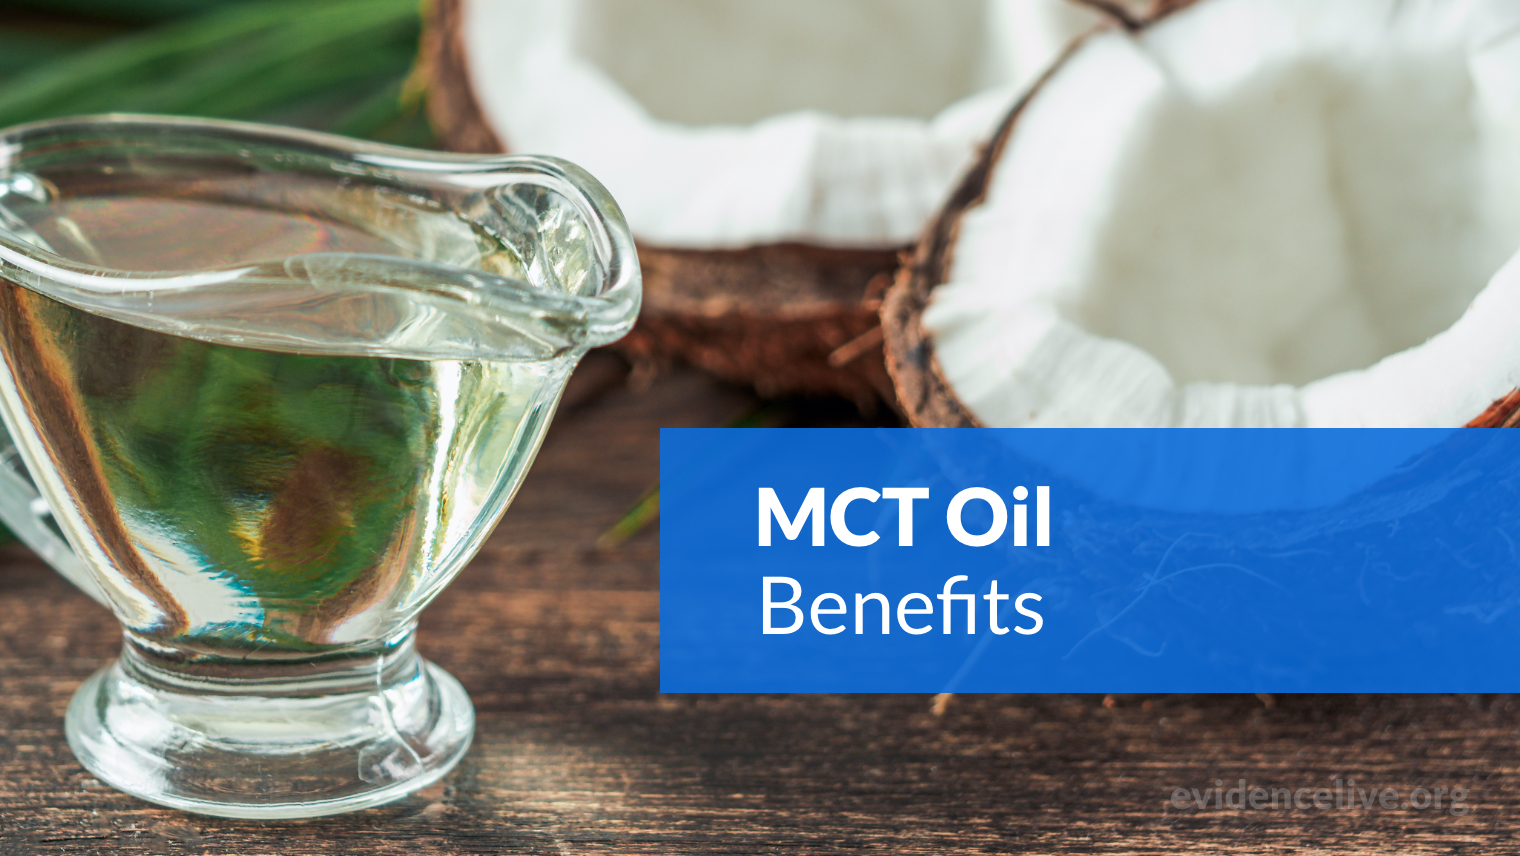 MCT Oil Benefits: What Are The Nootropic Effects?